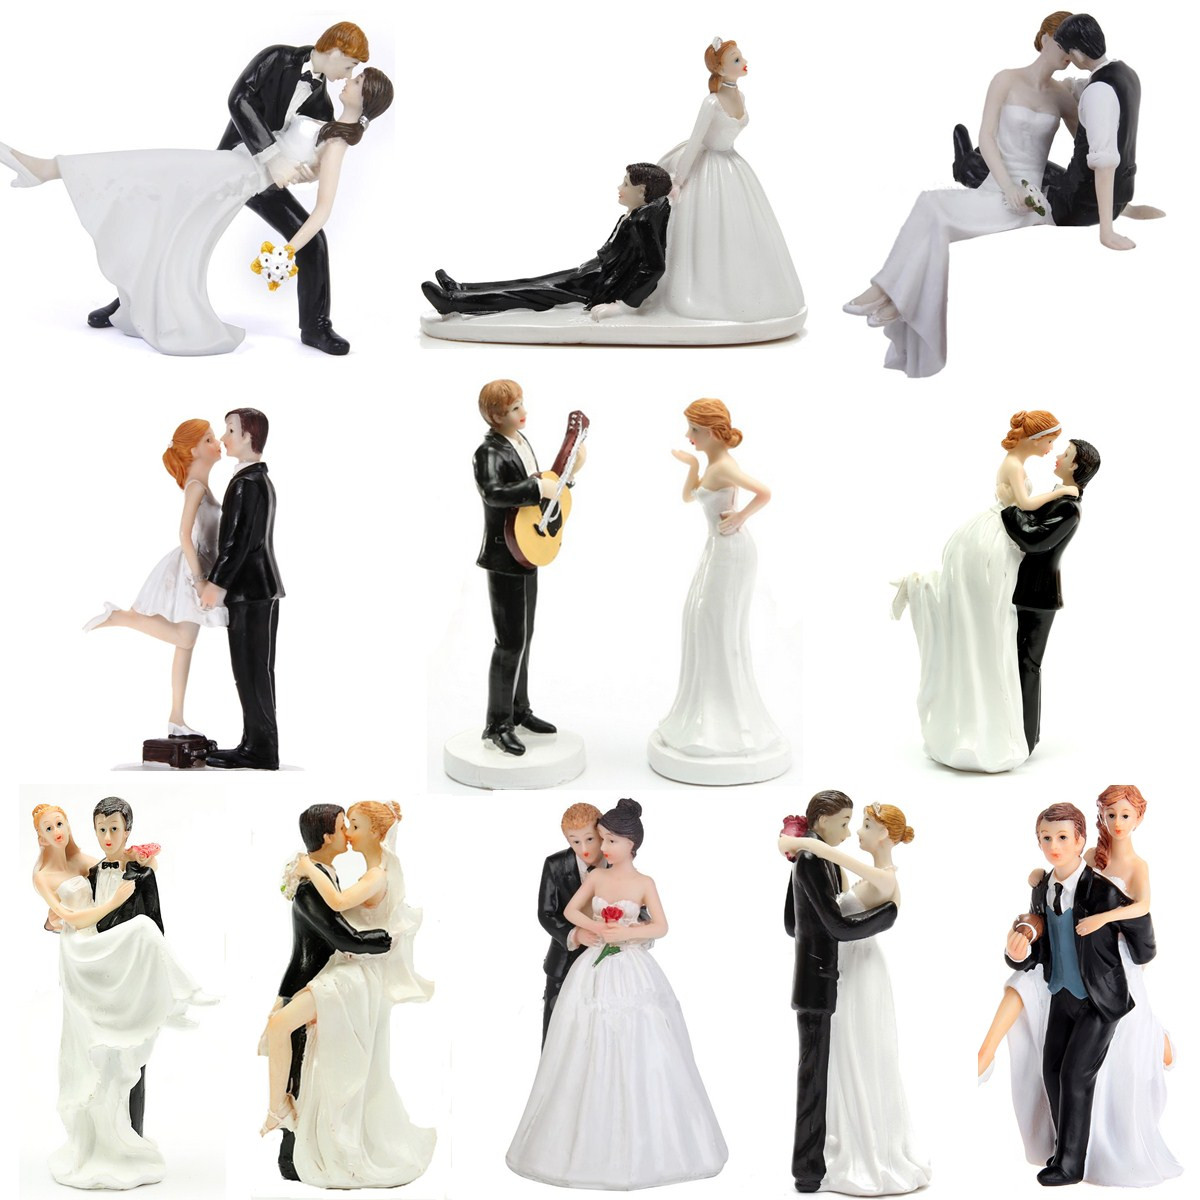 Bride Wedding Cake Topper: ROMANTIC FUNNY WEDDING CAKE TOPPER FIGURE BRIDE GROOM